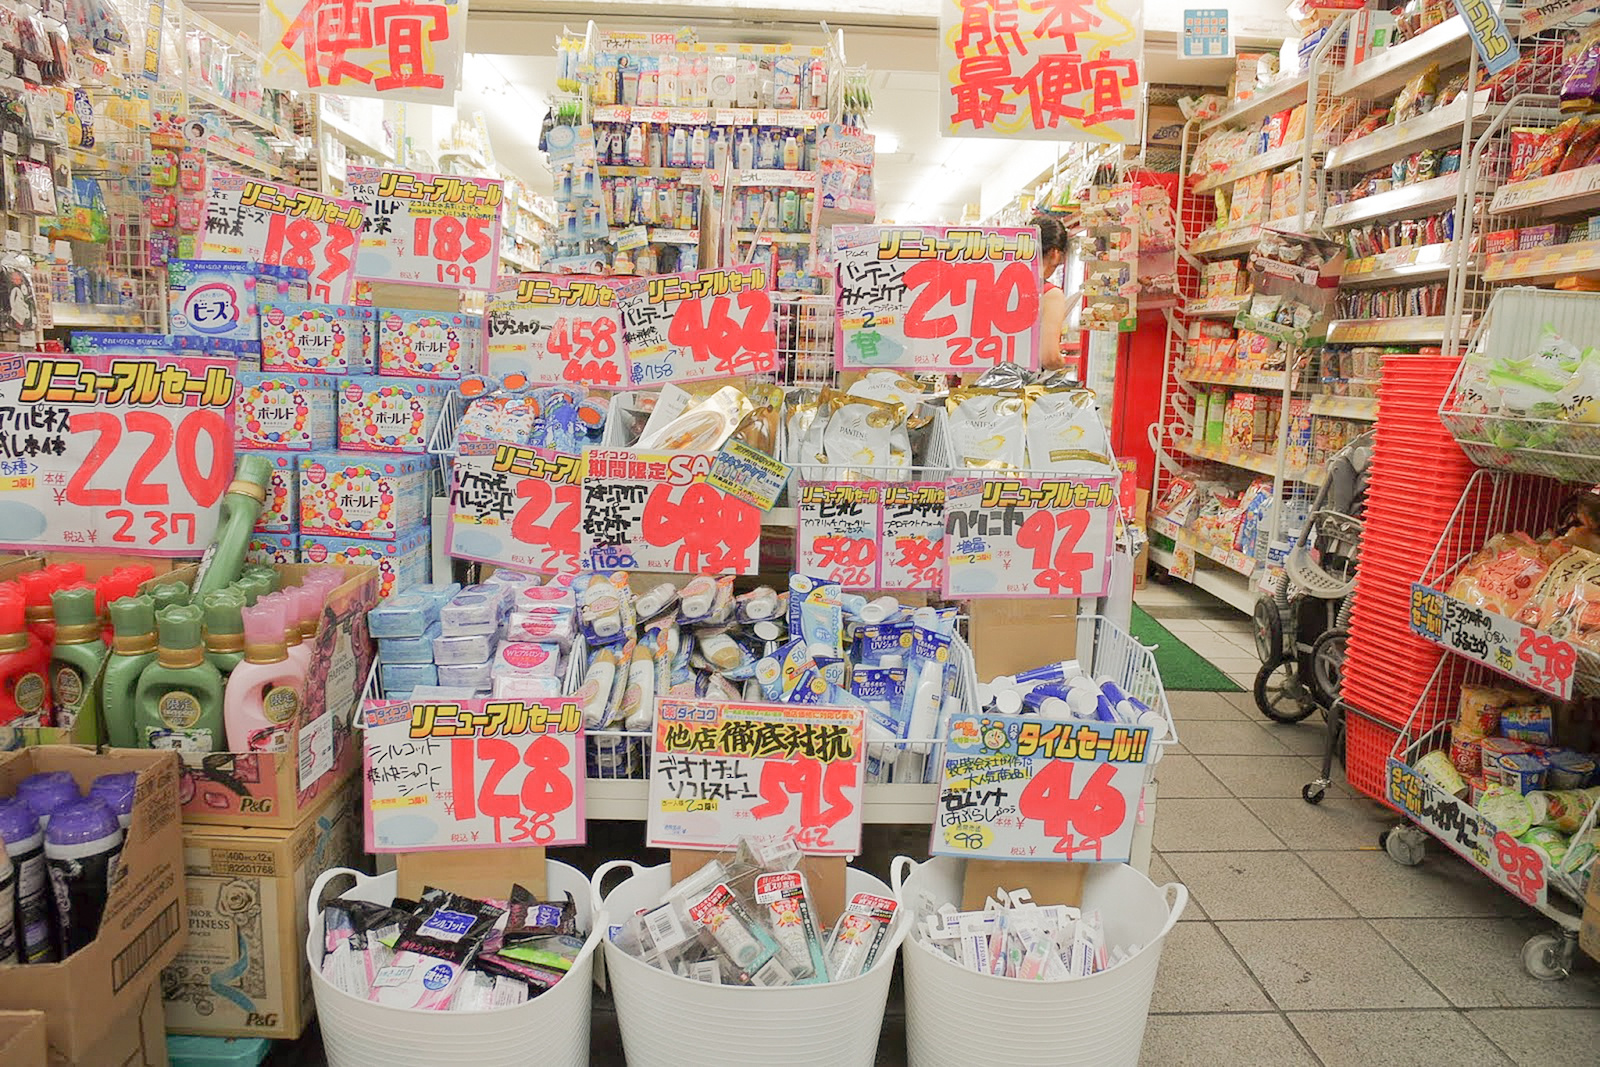 Daikoku Drug, a tax-free shop. Photo from  fredwu0503.blogspot.sg .